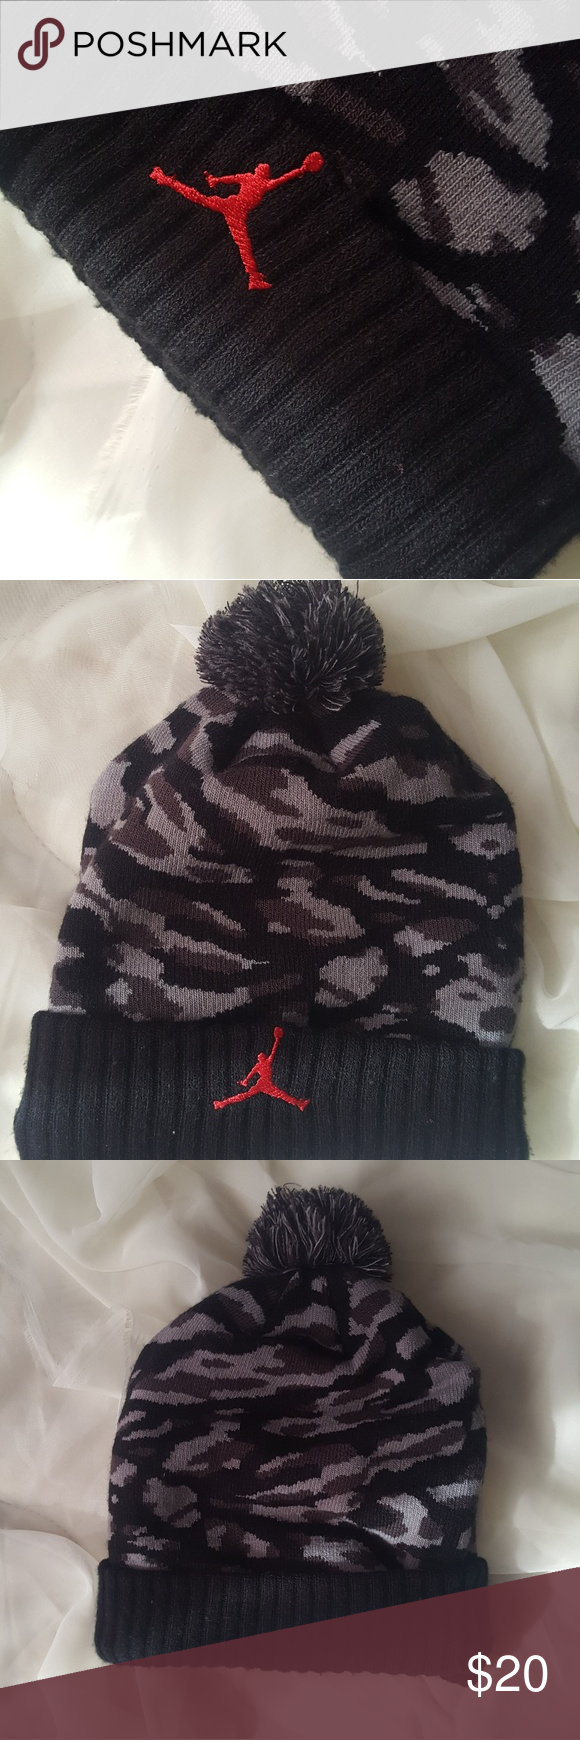 21bf63aef40 ... jordan hat like new jordan winter hat. only worn a couple of times in  excellent